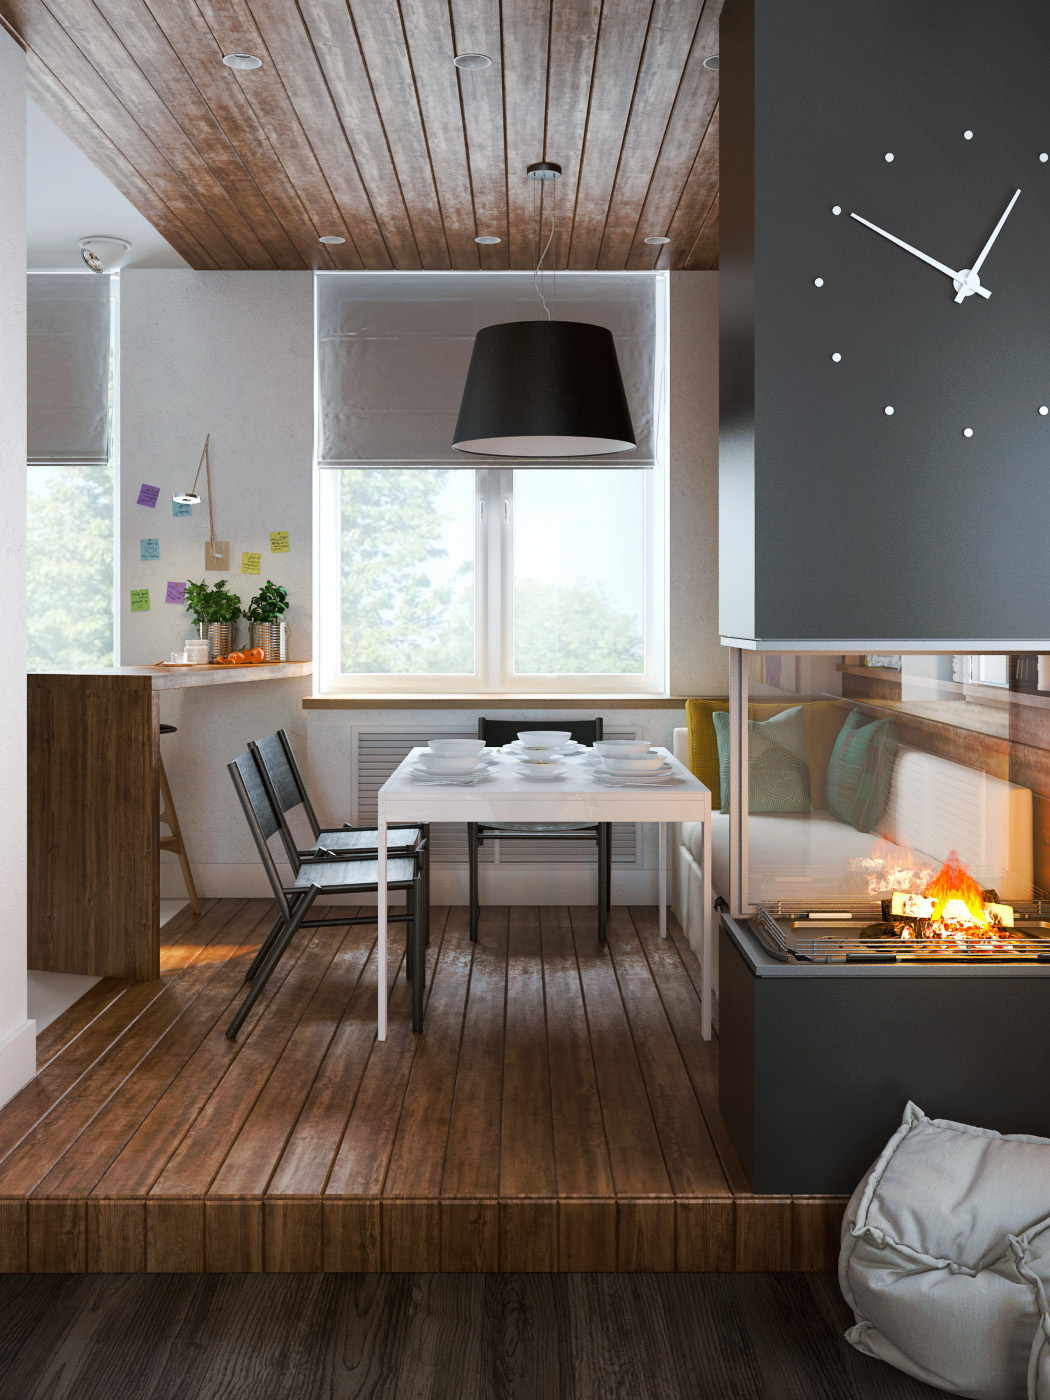 Matching Wood Floor And Ceiling - Exposed concrete walls ideas inspiration